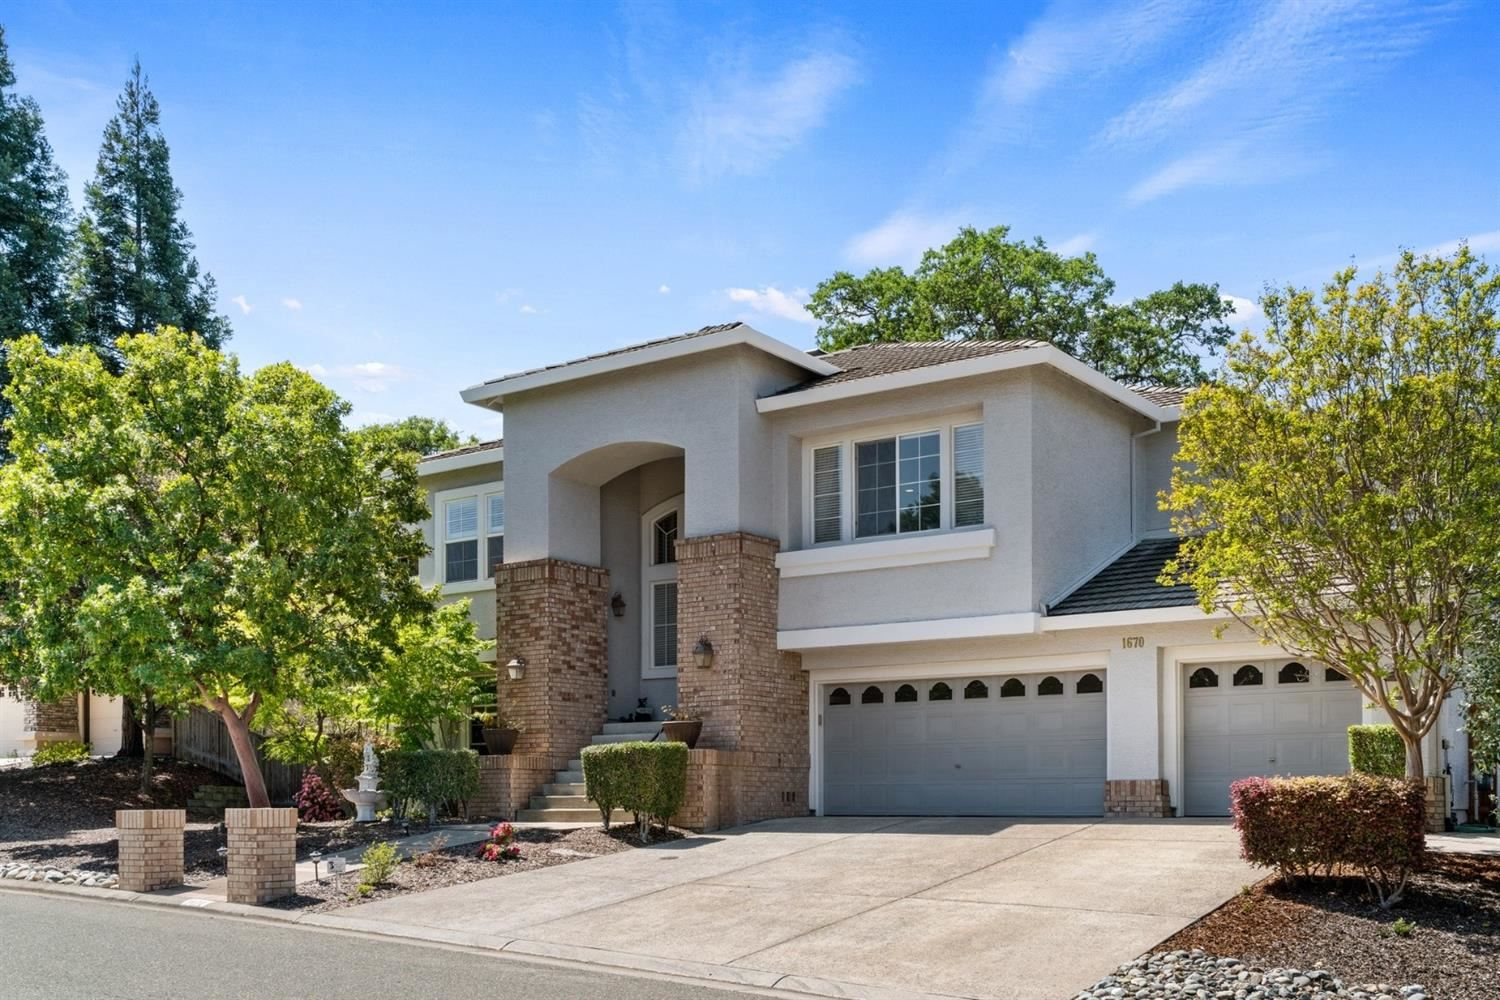 Photo of 1670 Halifax Way, El Dorado Hills, CA 95762 (MLS # 221035329)